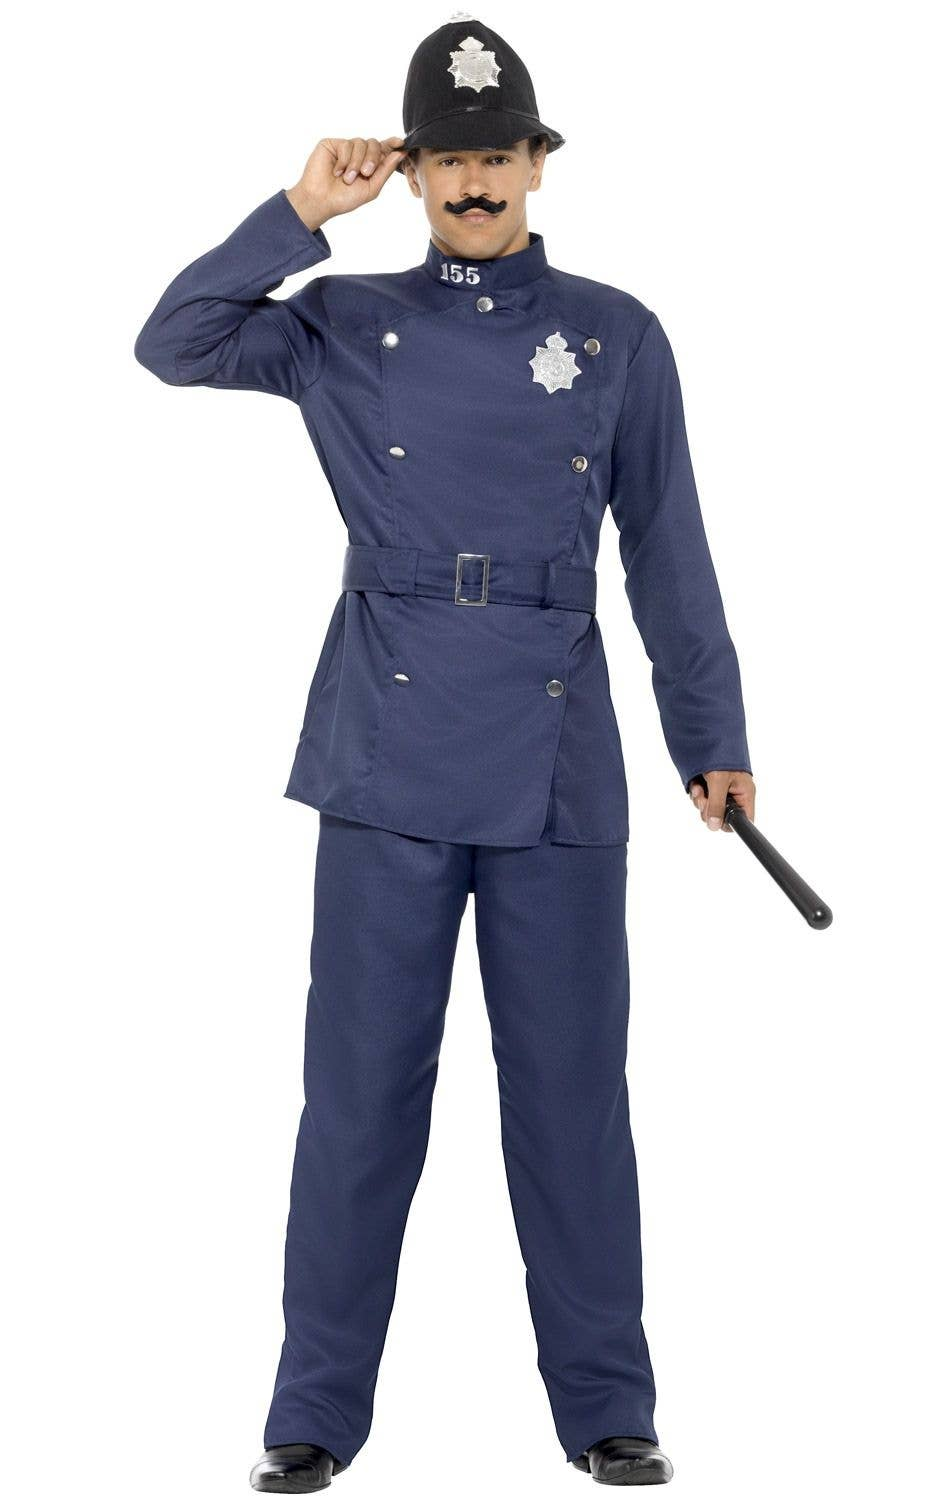 ea280c2884 London Bobby Police Officer Blue Fancy Dress Costume Front View